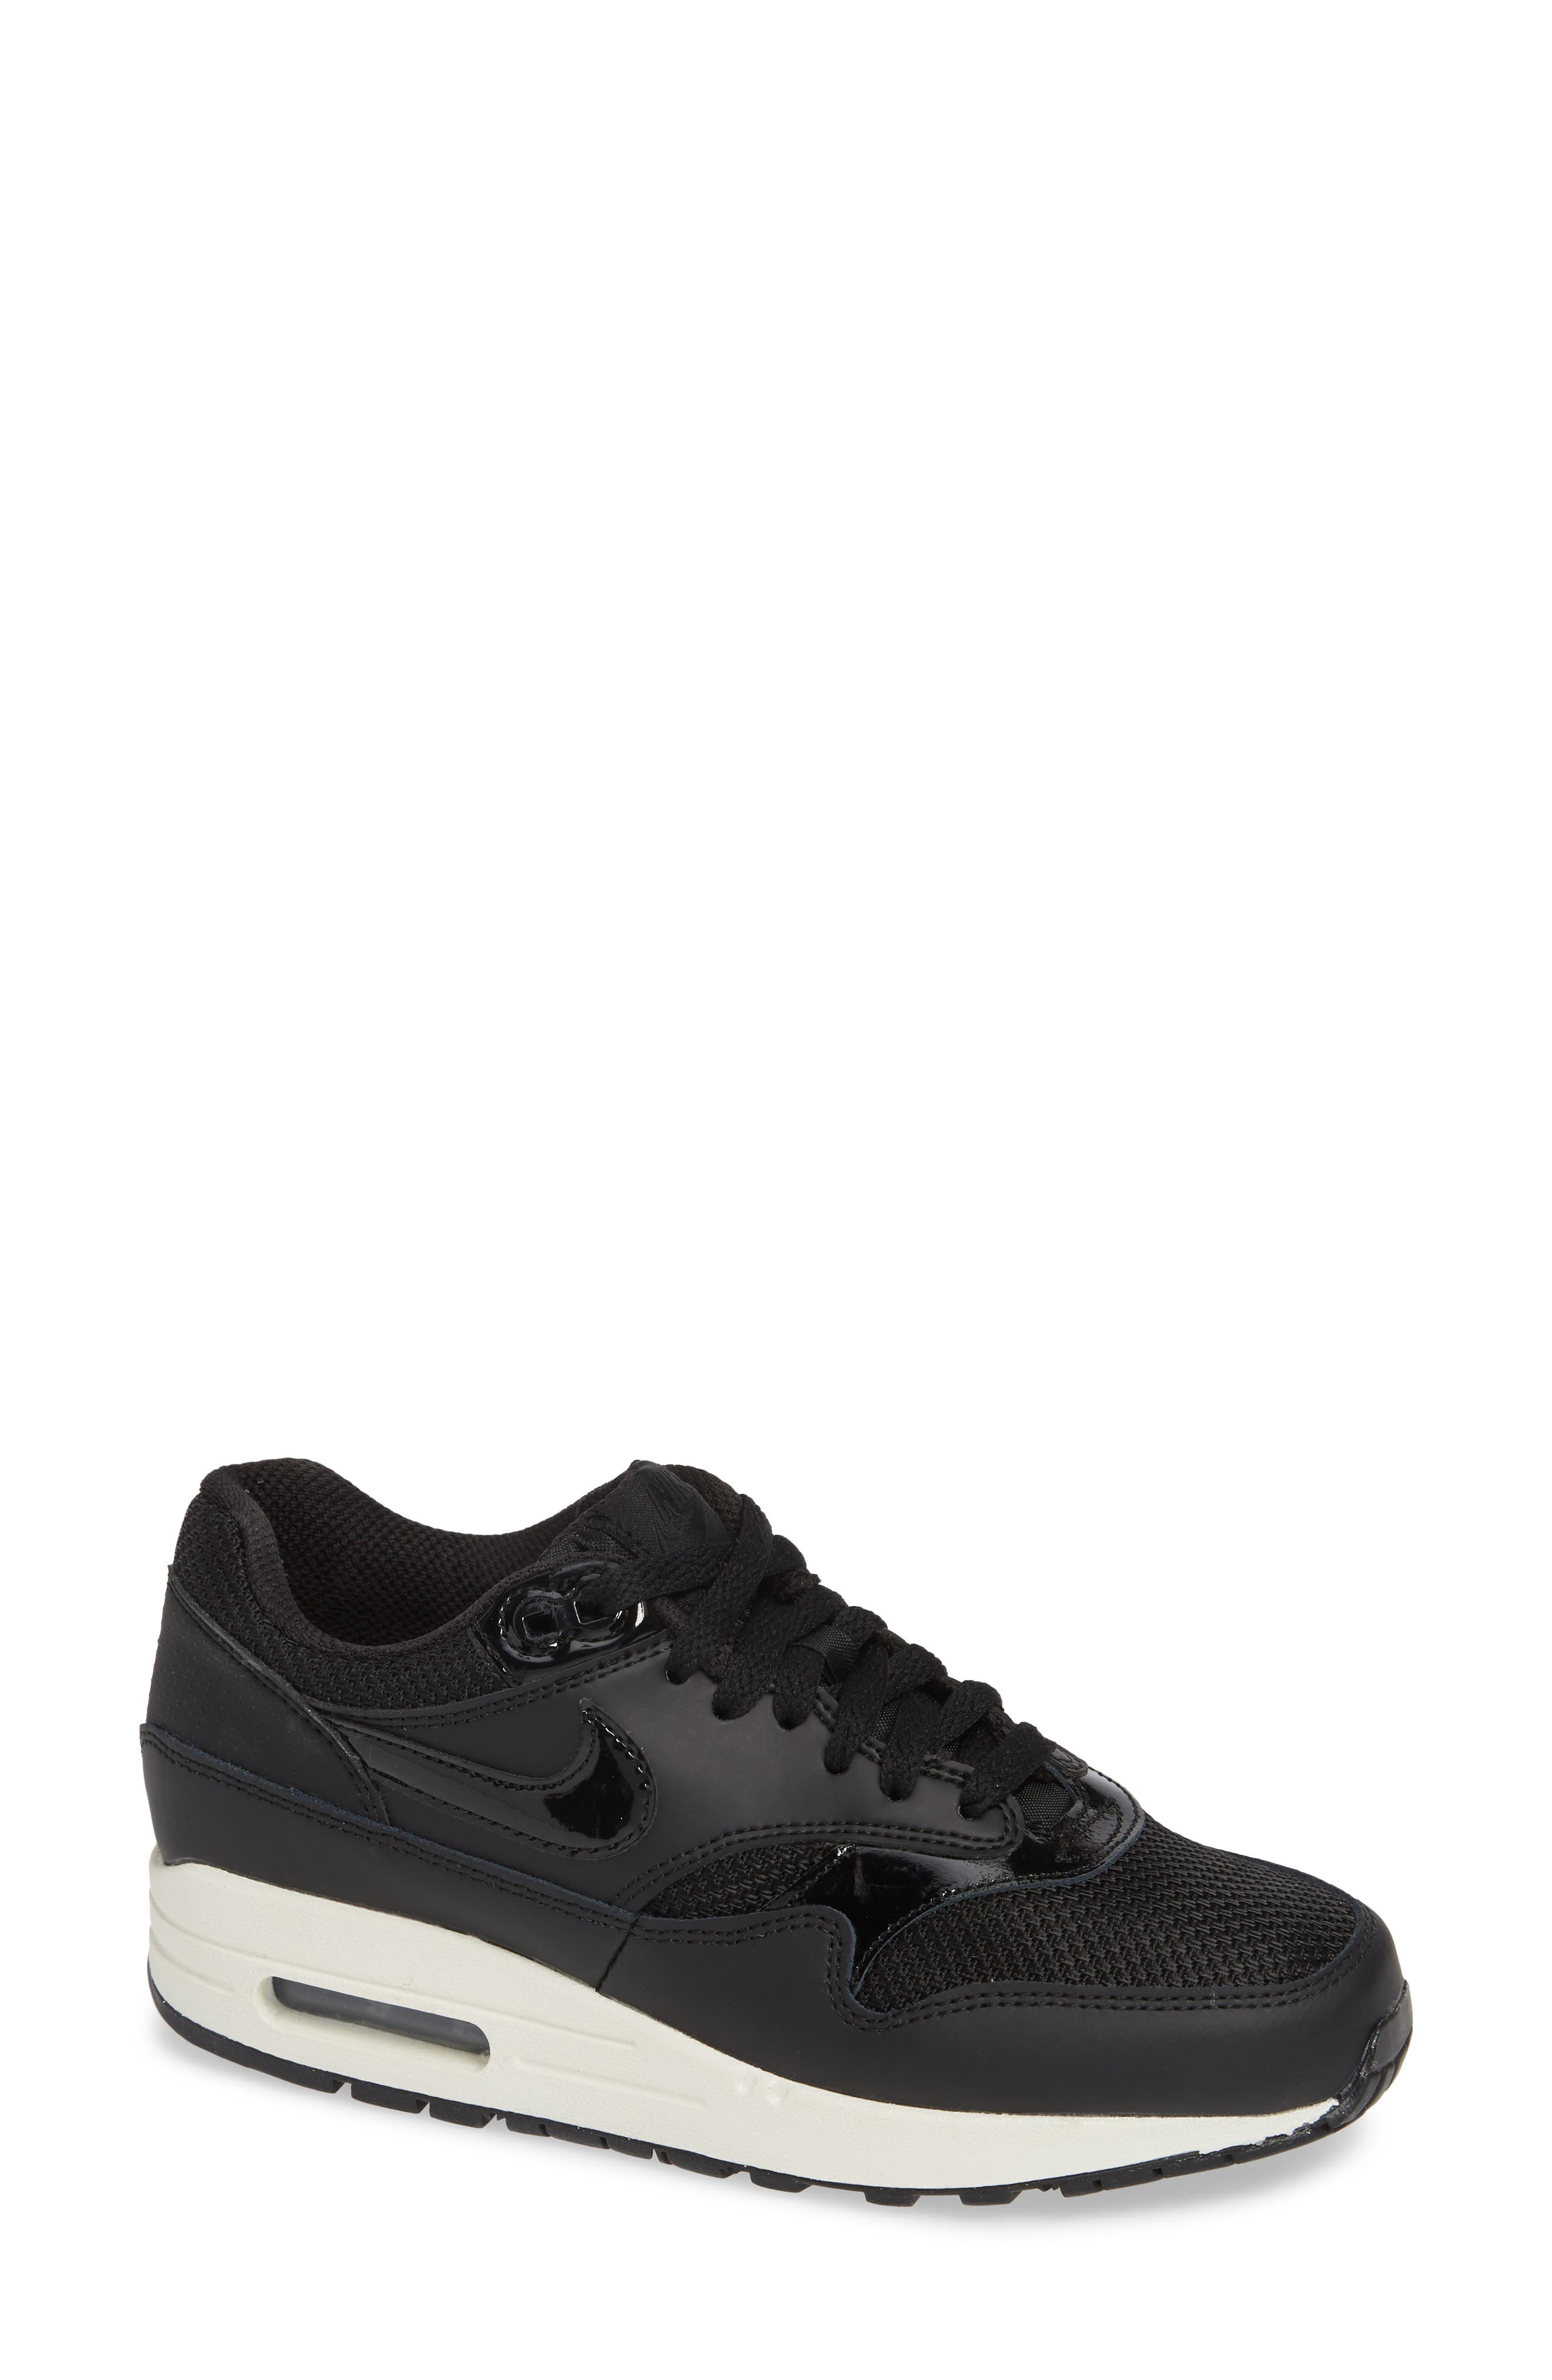 NIKE Air Max 1 ND Sneaker, Main, color, BLACK/ BLACK-BLACK- WHITE